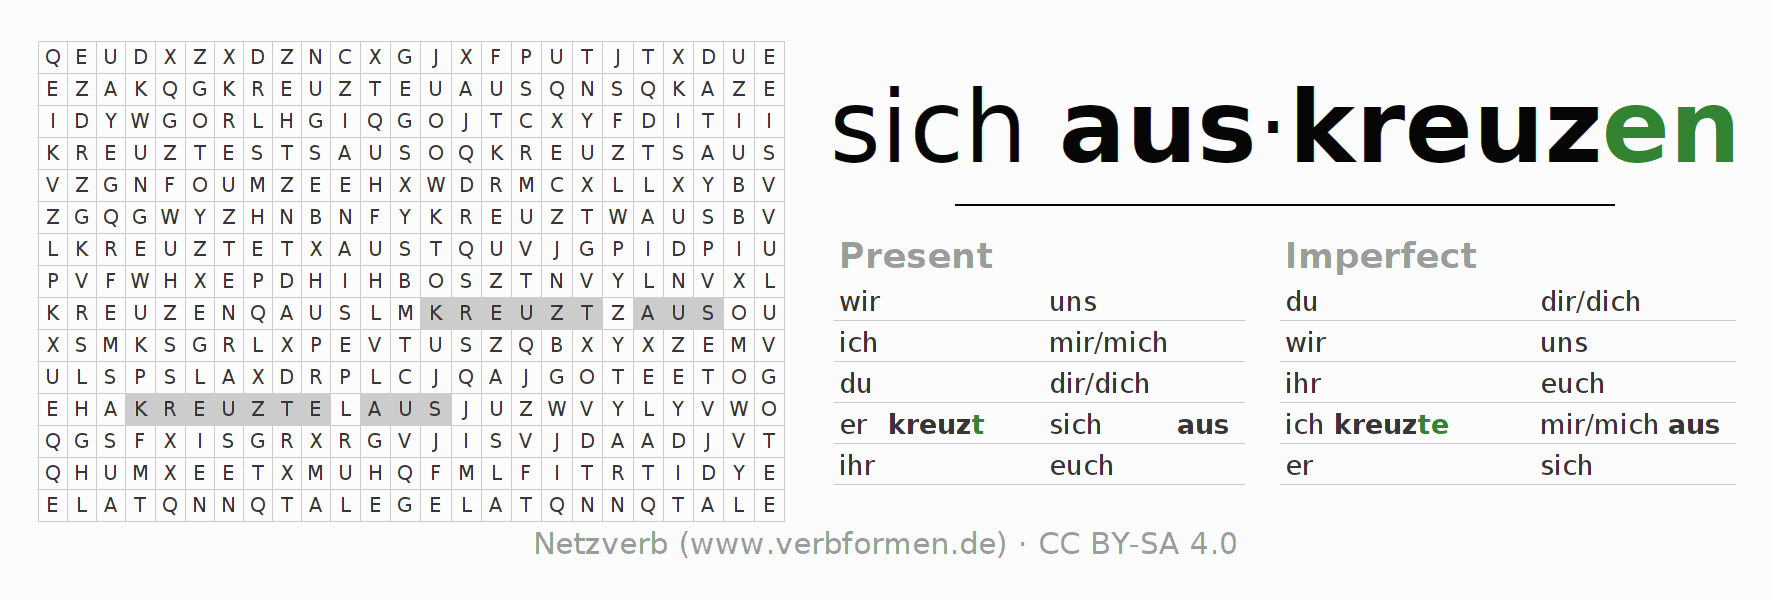 Word search puzzle for the conjugation of the verb sich auskreuzen